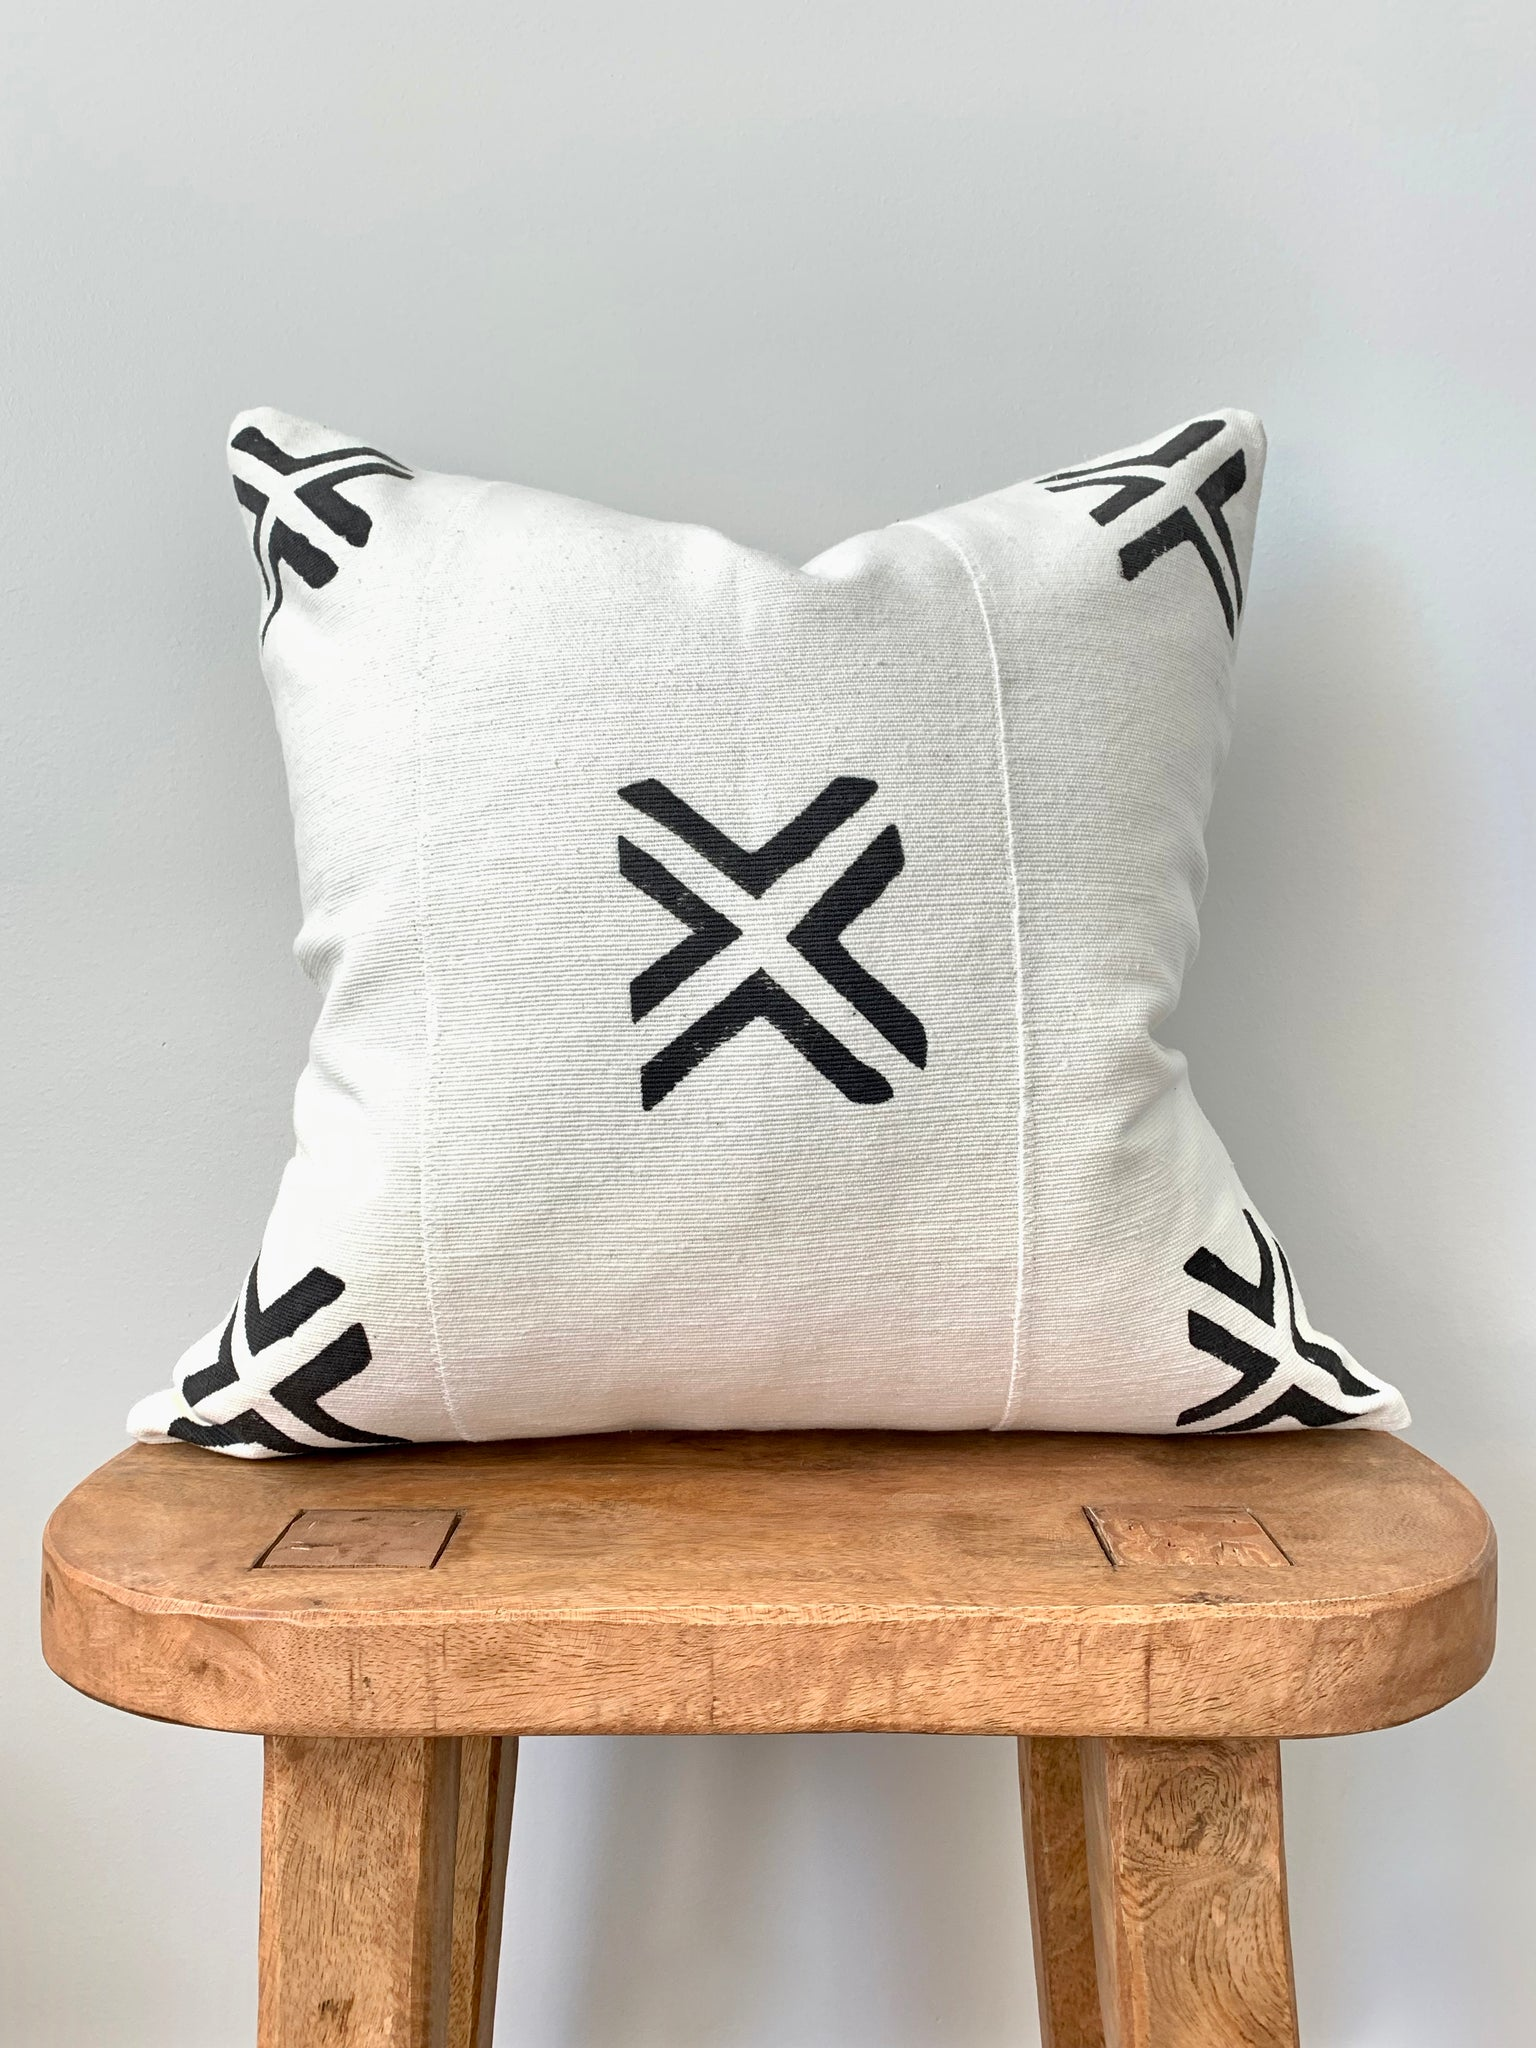 Double X Mudcloth Pillow Cover